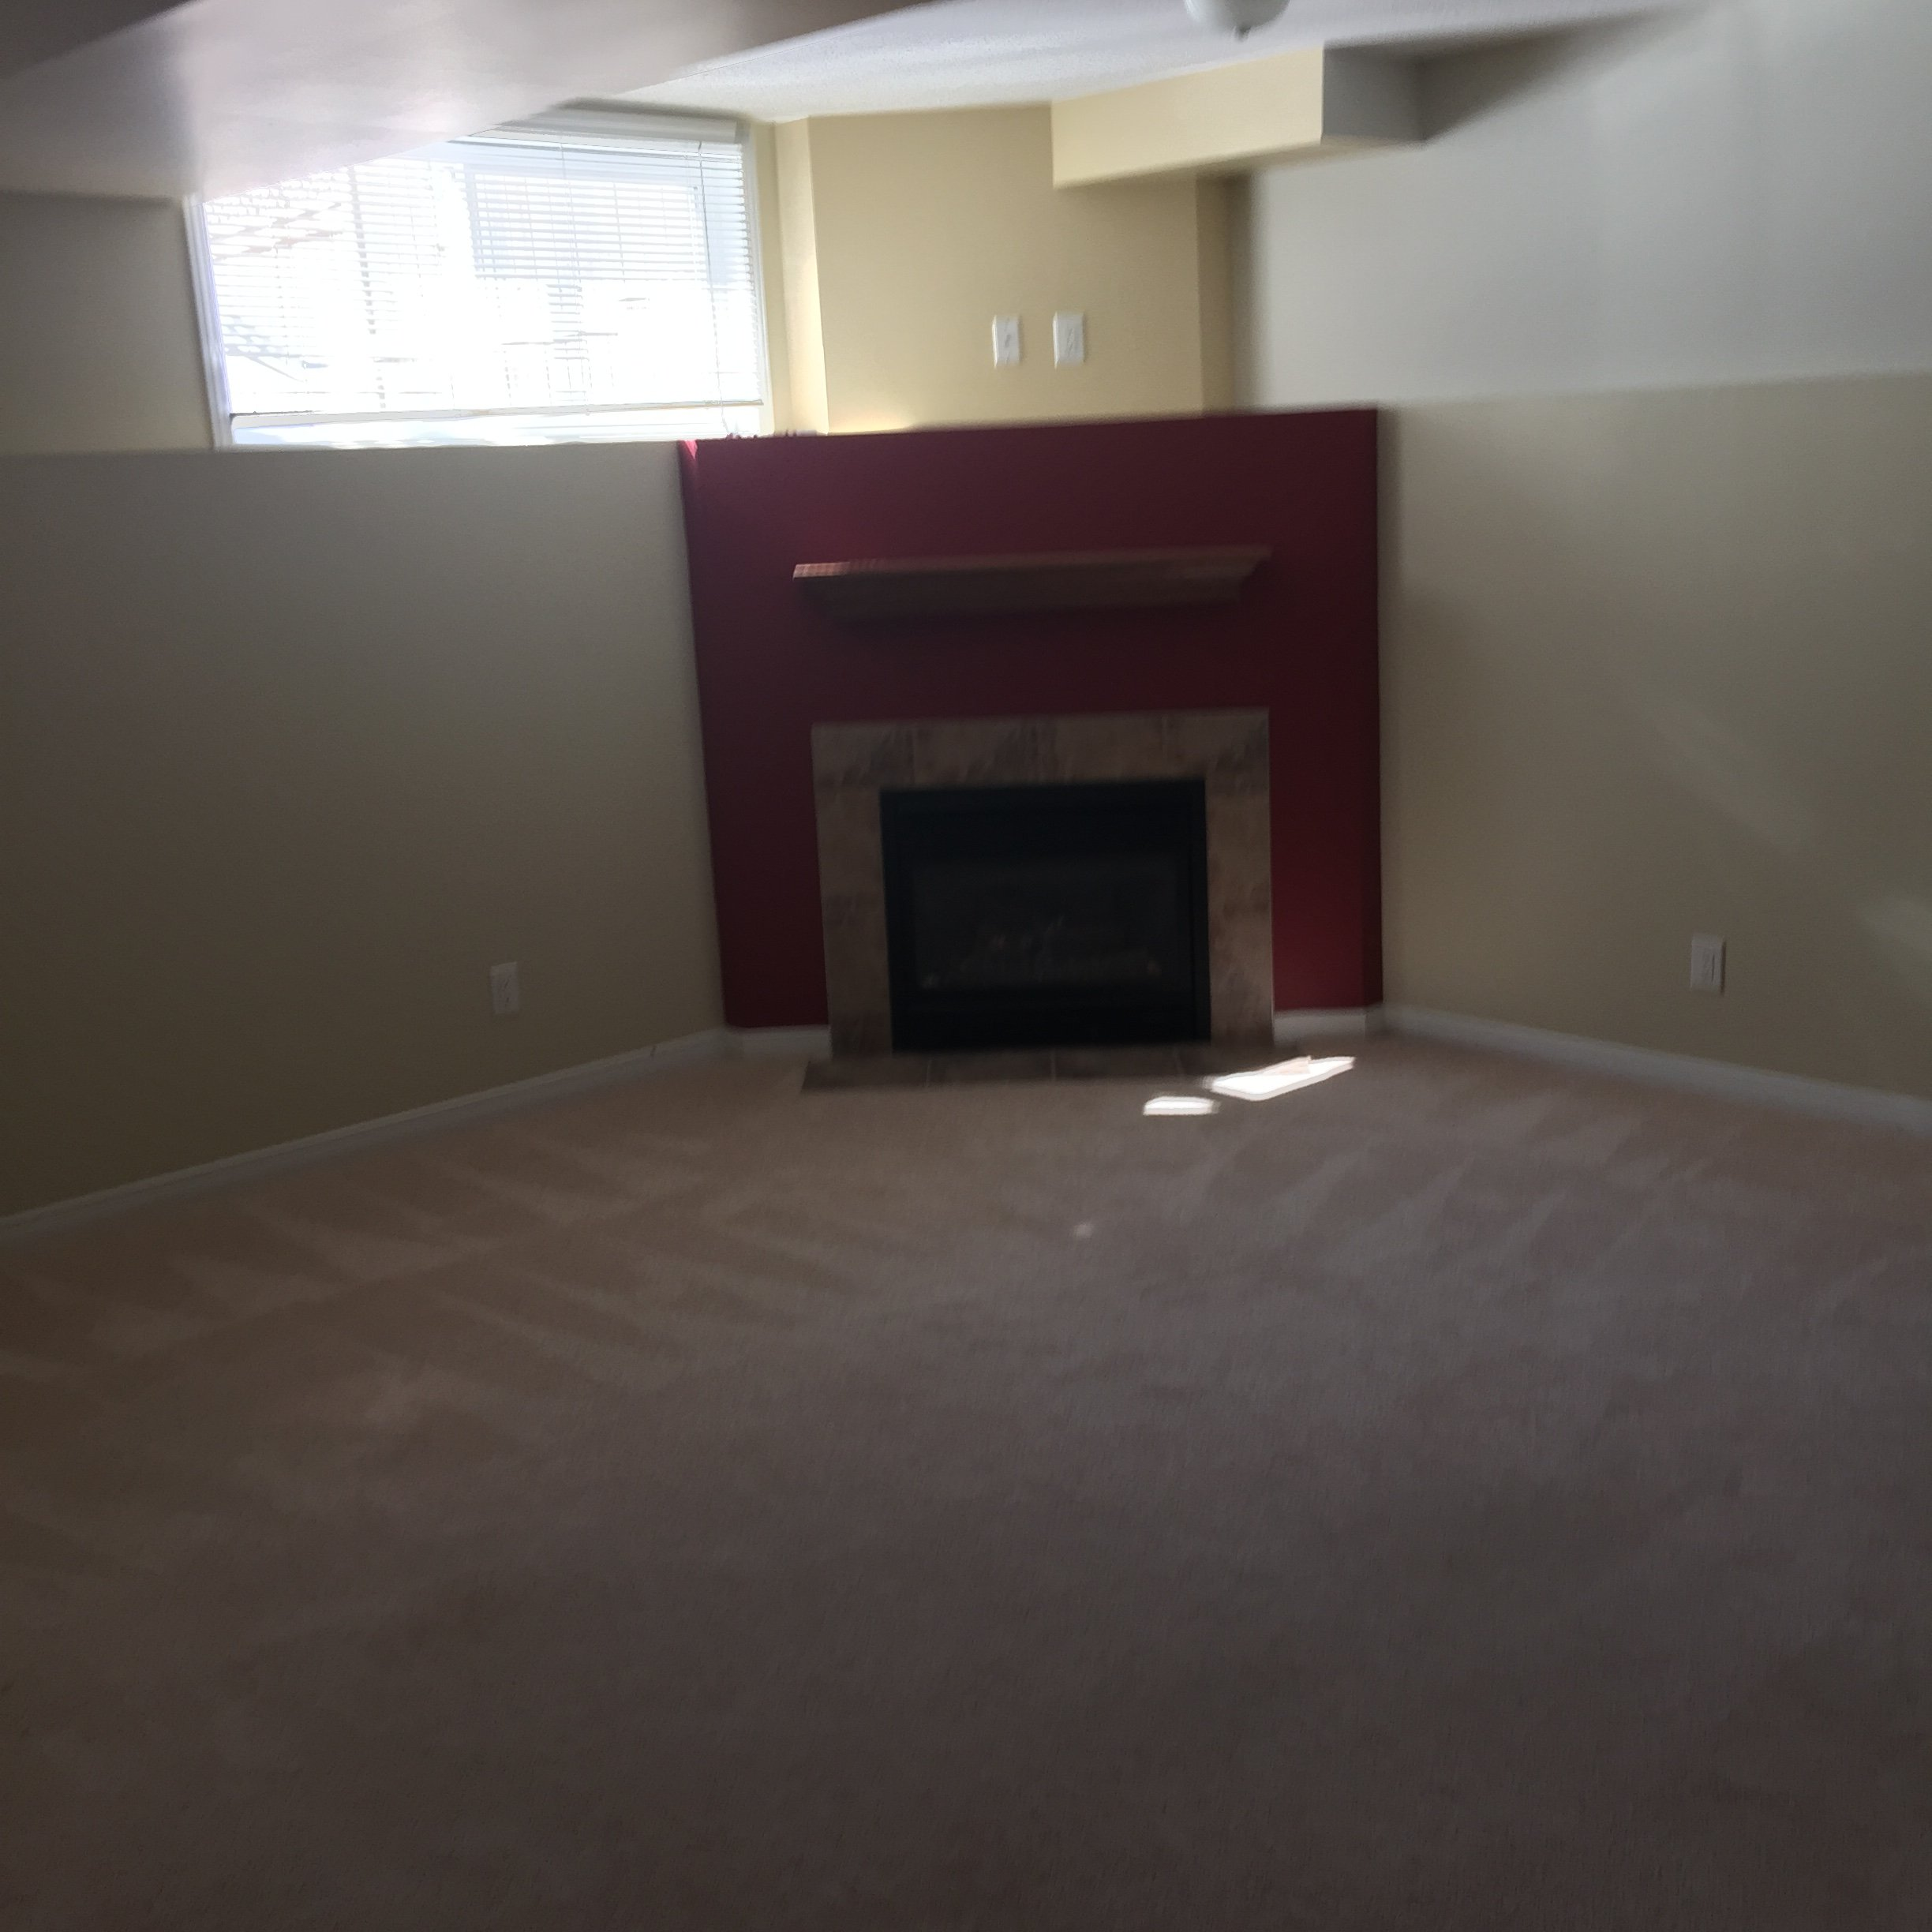 Excecutive Townhome For Rent Immediately